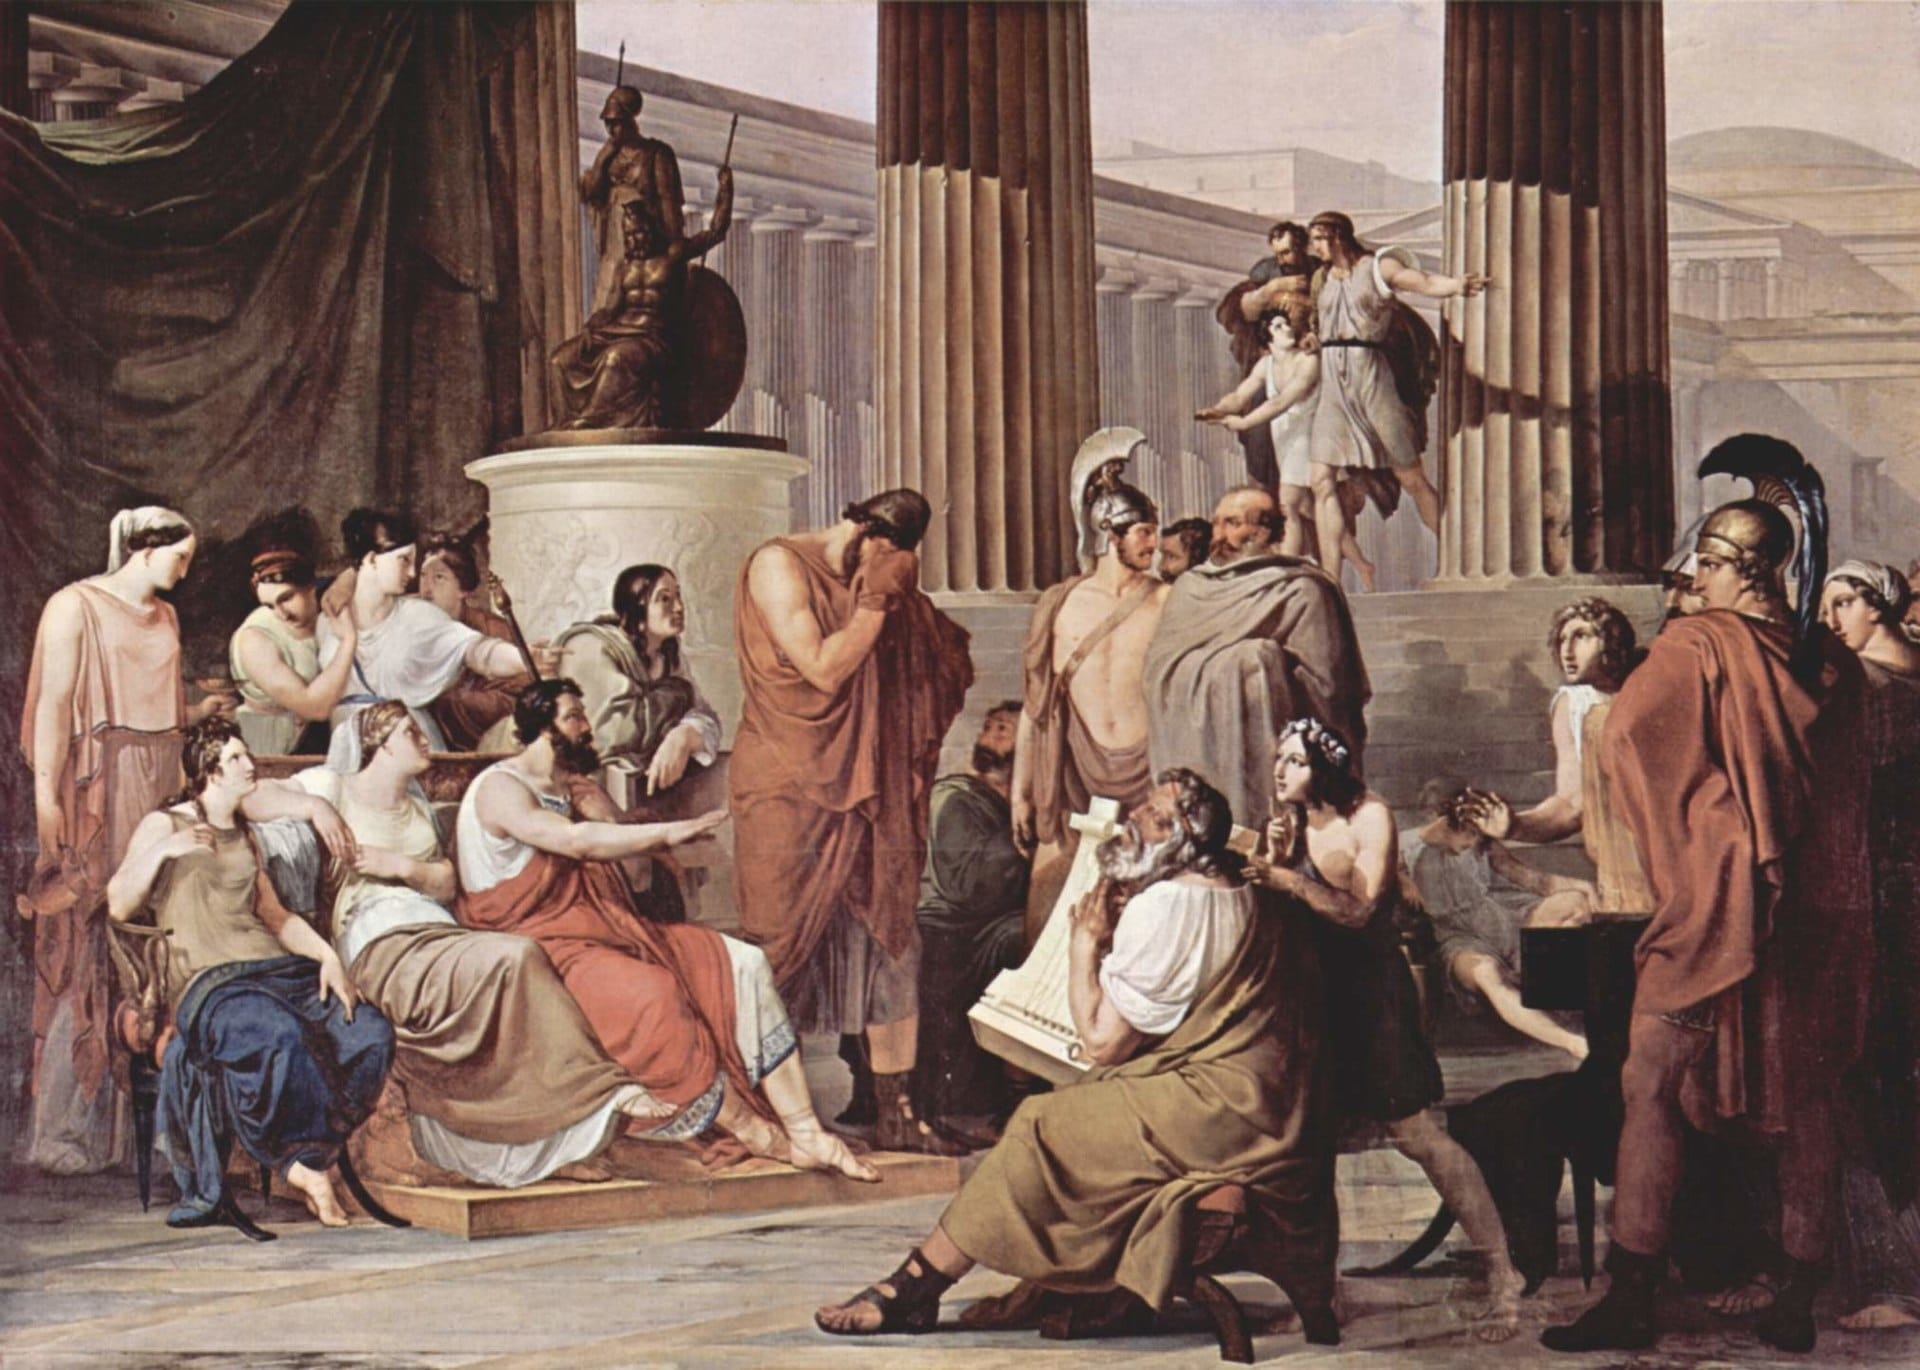 Odyssey: Homer's Epic Poem Is Officially the World's Most Influential Story